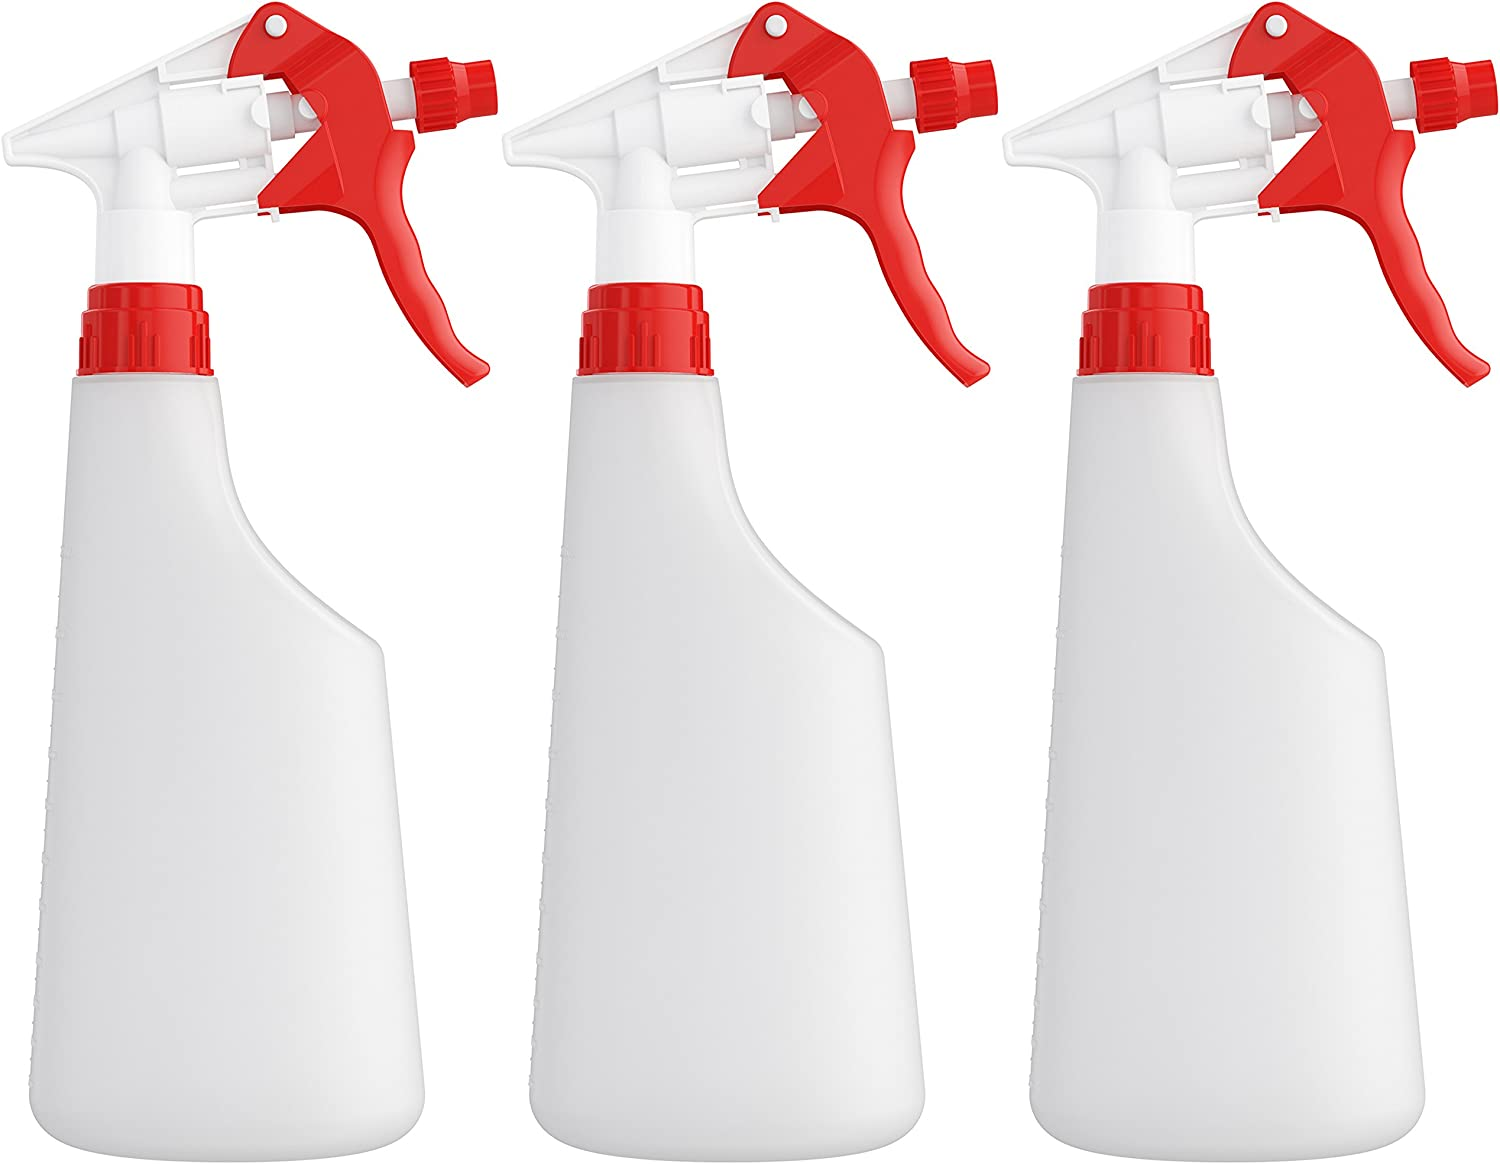 Homestead Choice Plastic Spray Bottles 22oz Leak Proof with Commercial Grade Trigger Sprayer - 3 Pack: Garden & Outdoor